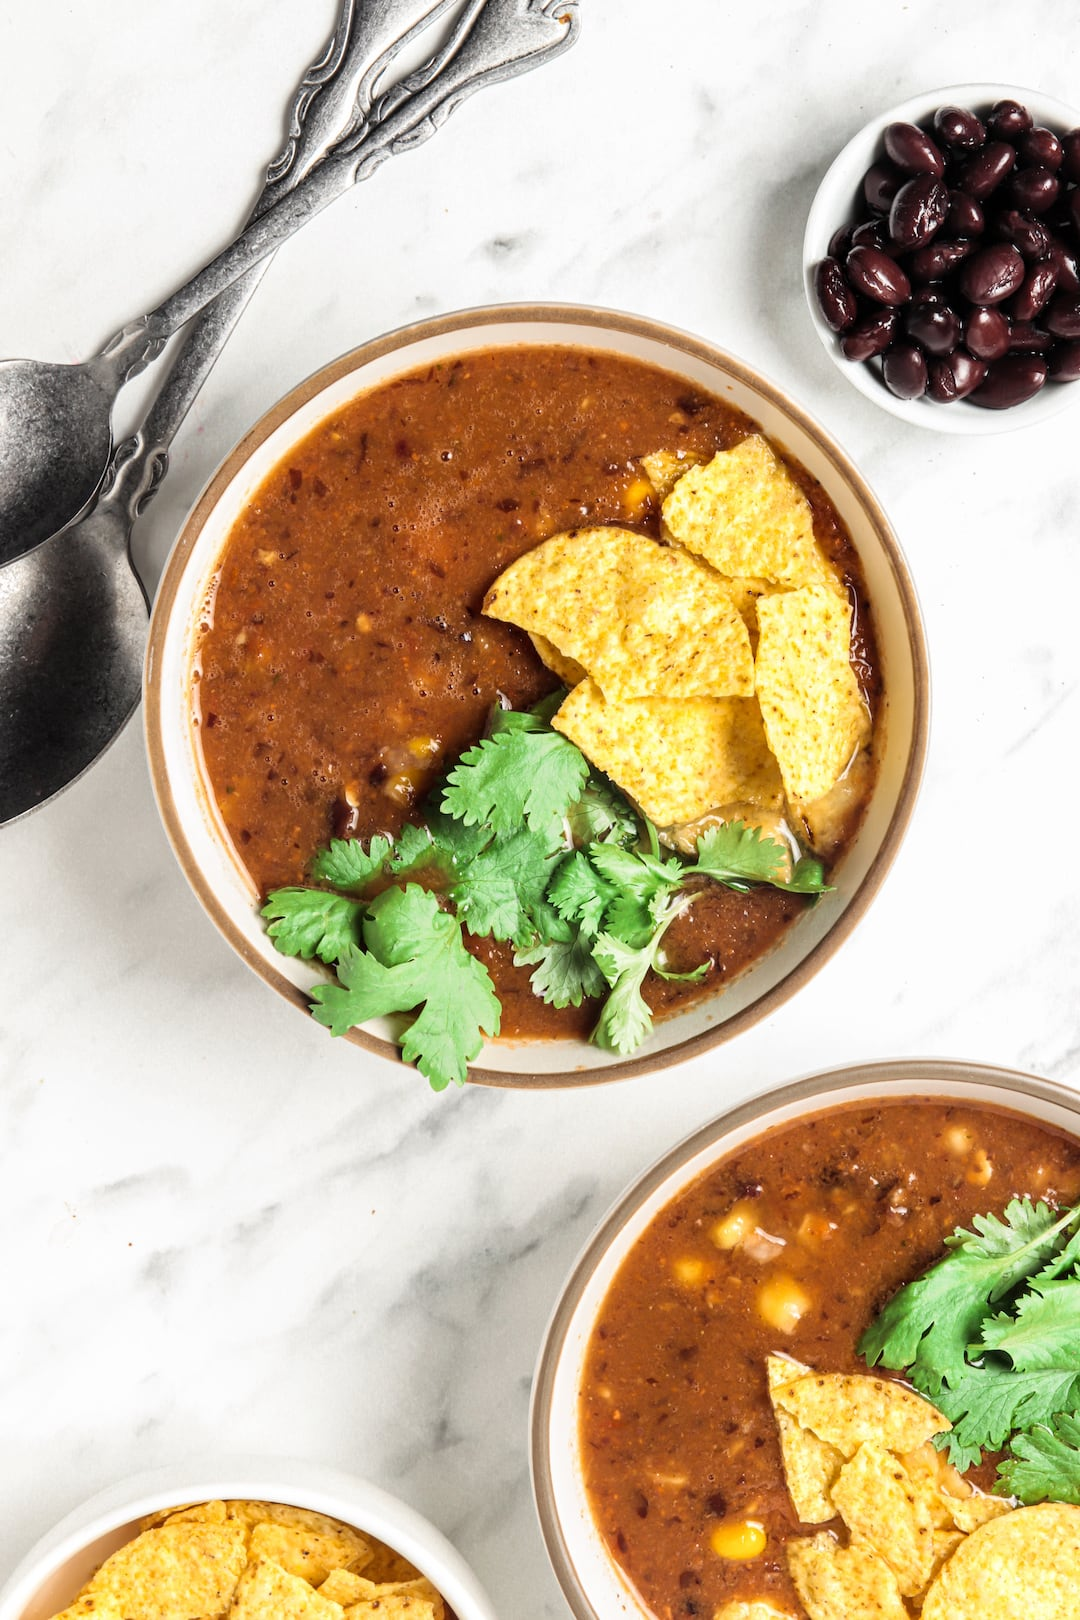 Two bowls of Easy Blender Vitamix Tortilla Soup topped with tortilla chips and cilantro